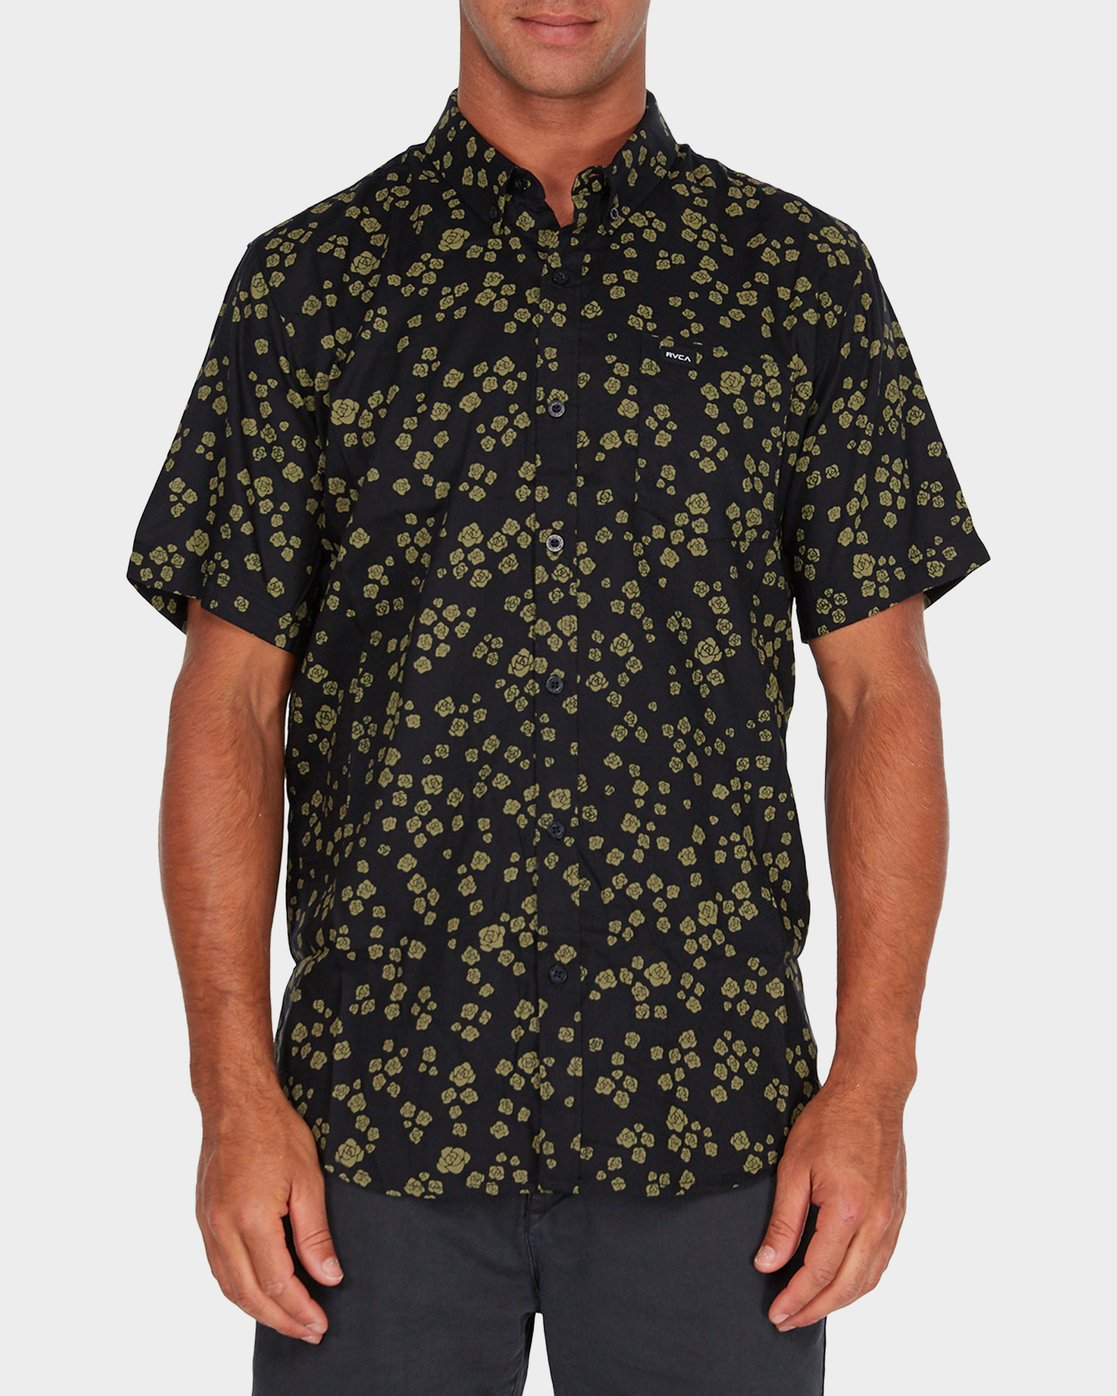 0 RVCA Rosa Short Sleeve Shirt  R182185 RVCA